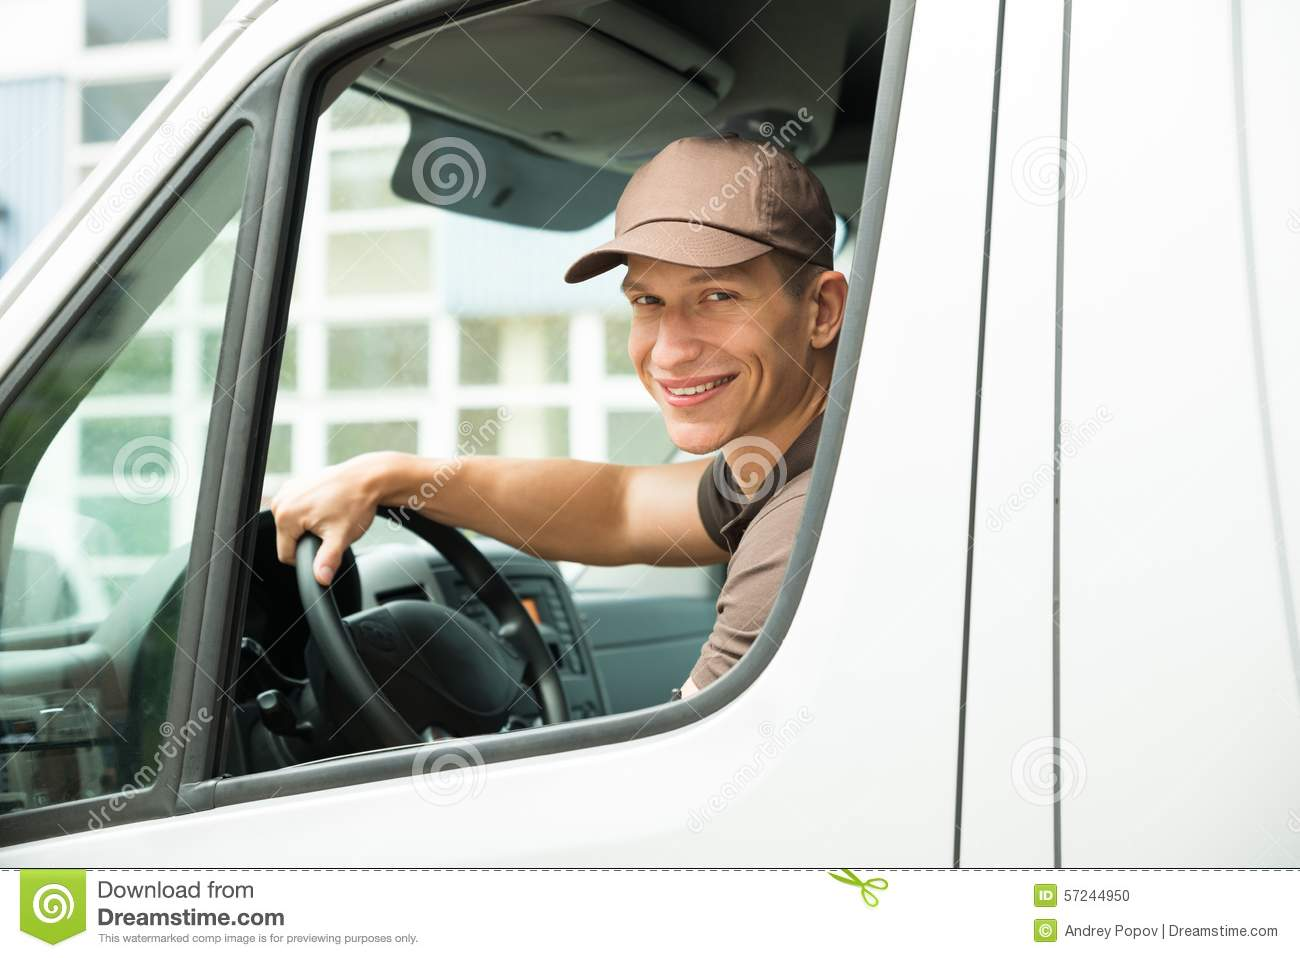 Car Whistling While Driving